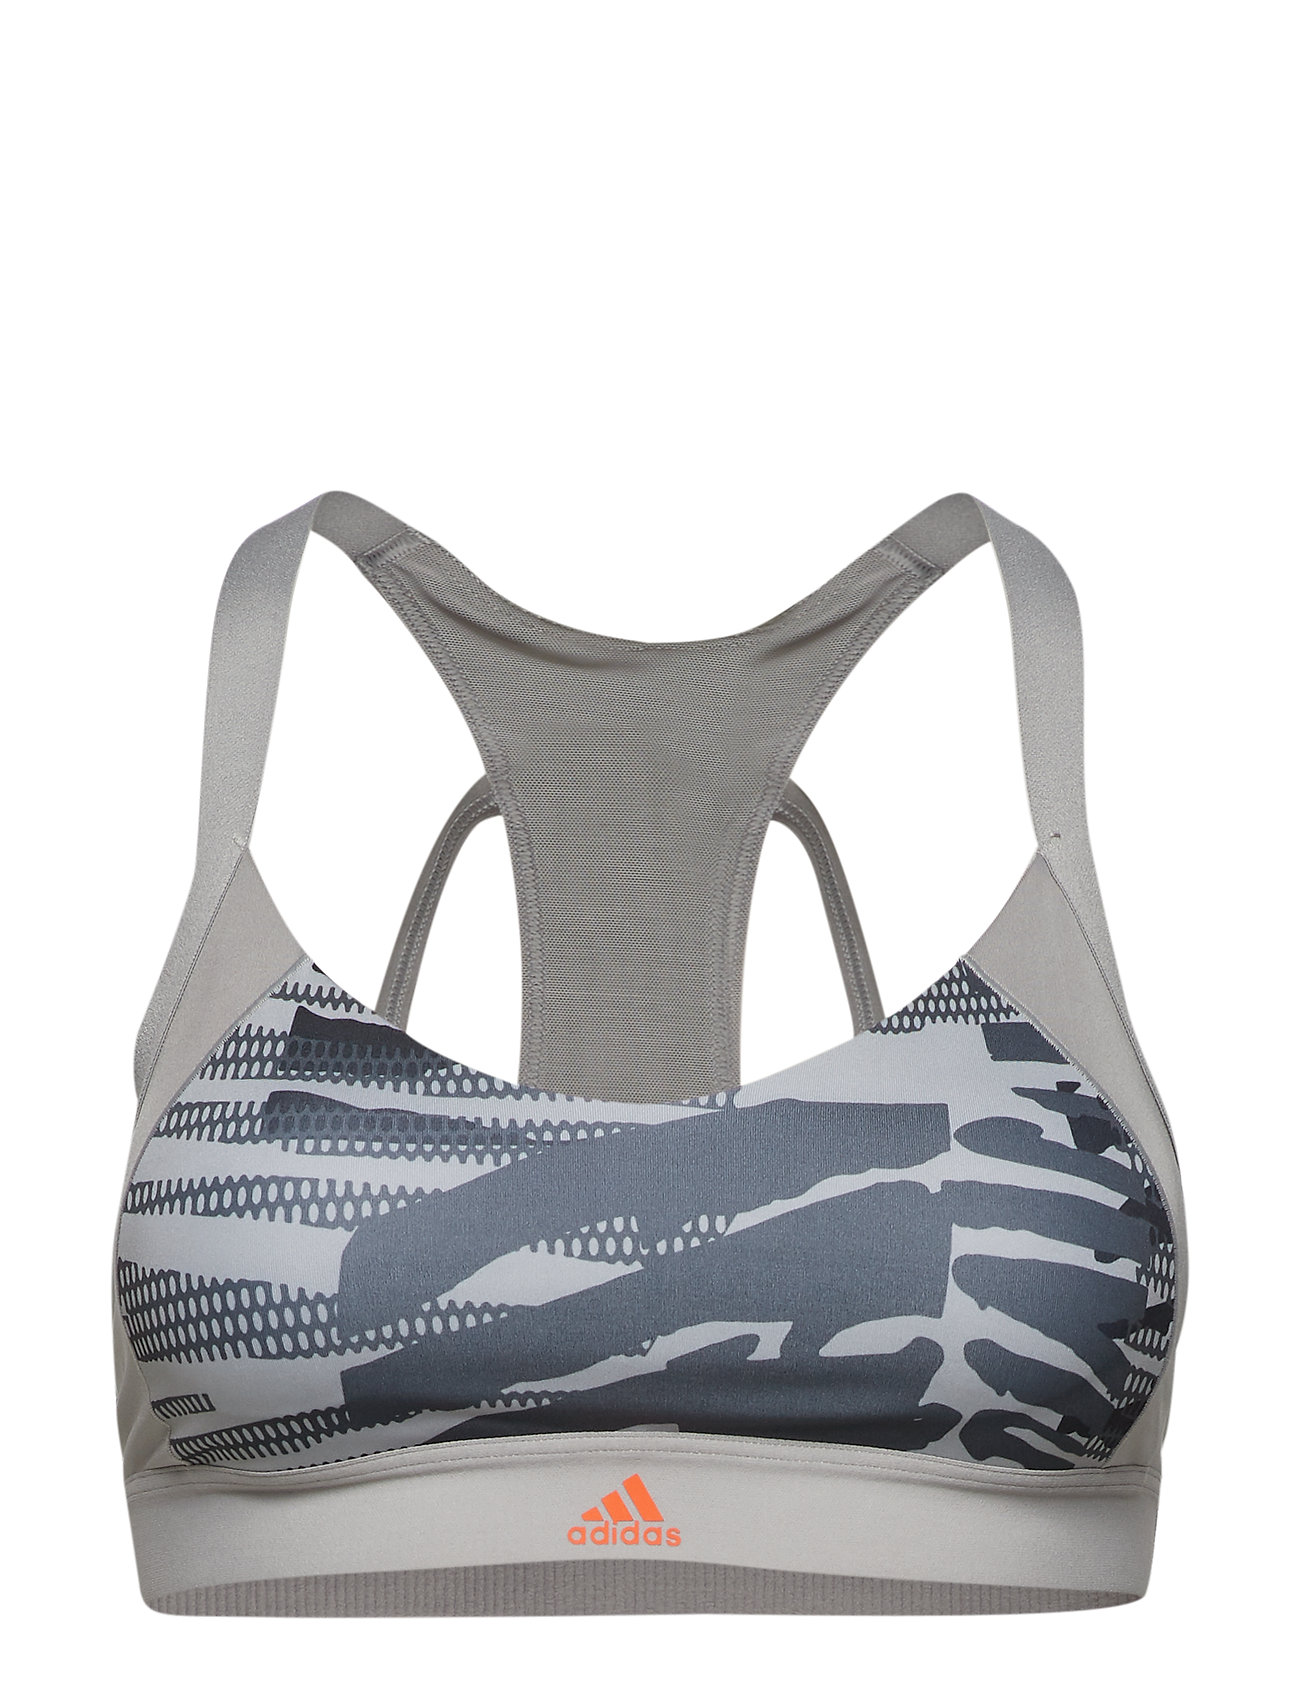 adidas Performance AM AI Q3 BRA - MGSOGR/PRINT